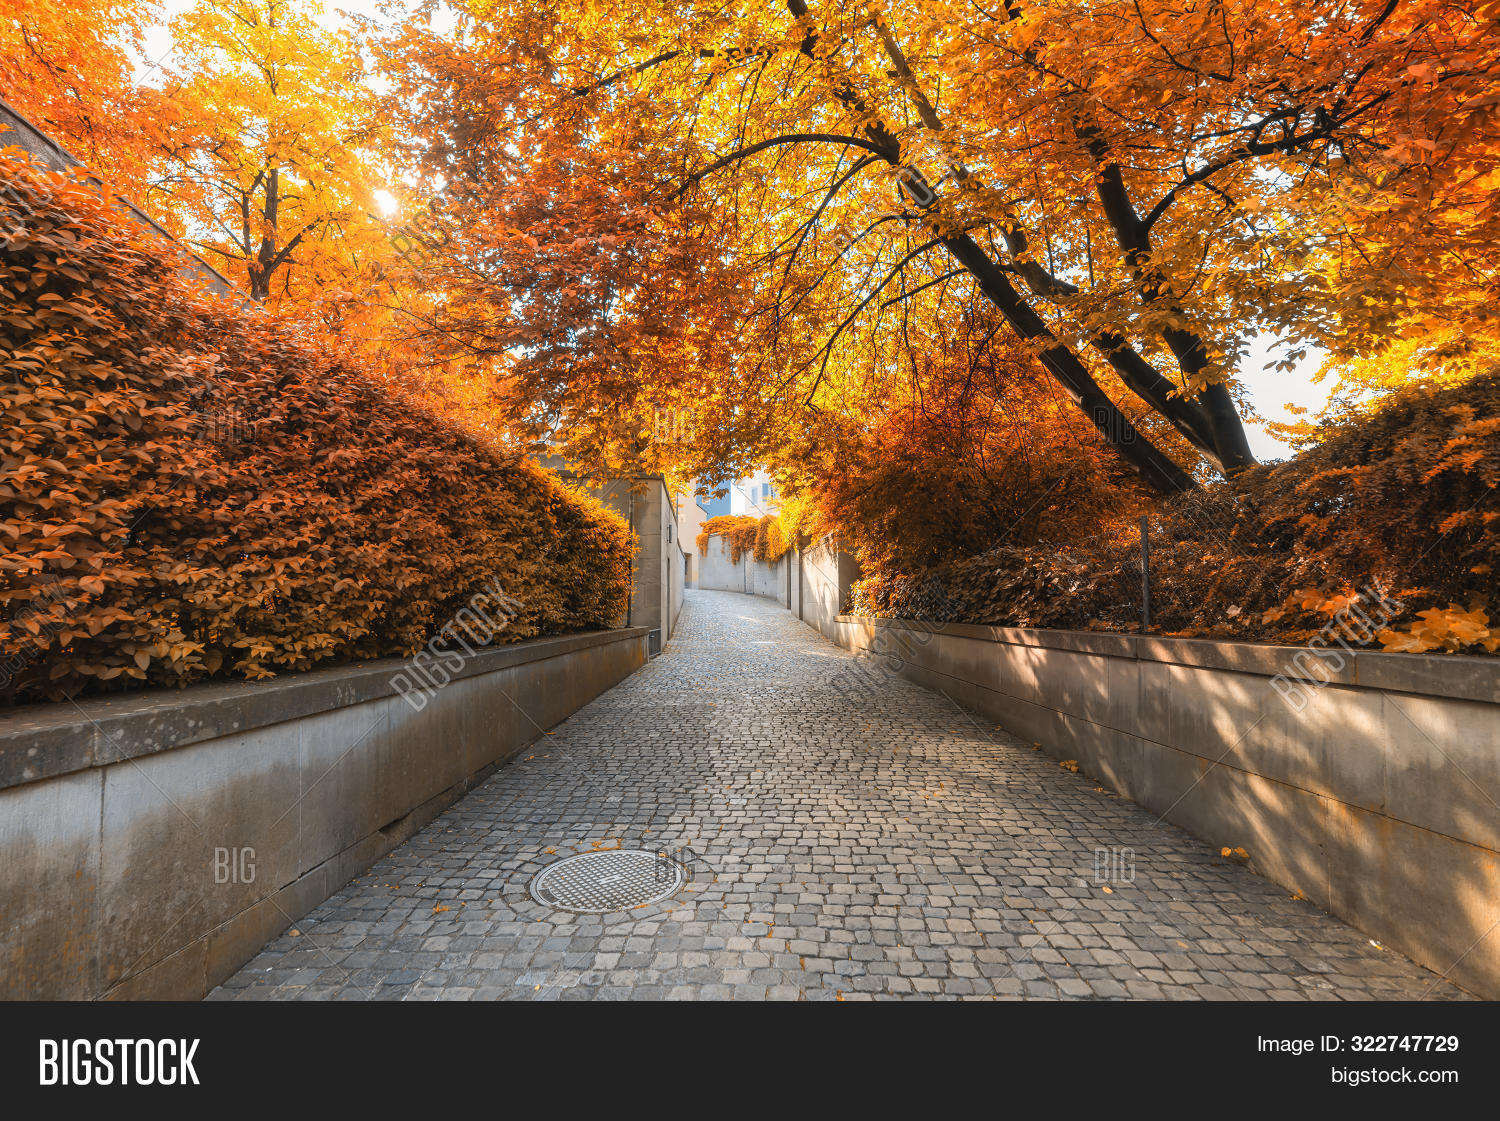 Lindenhof,October,activities,architecture,autumn,beautiful,branch,building,city,colorful,day,dry,environment,exterior,field,forest,garden,glowing,green,idyllic,landscape,leisure,lifestyles,morning,natural,nature,outdoors,park,path,pathway,plant,public,relax,relaxation,road,scenic,season,sunlight,swiss,switzerland,tourism,town,travel,tree,view,walk,walkway,warm,way,wood